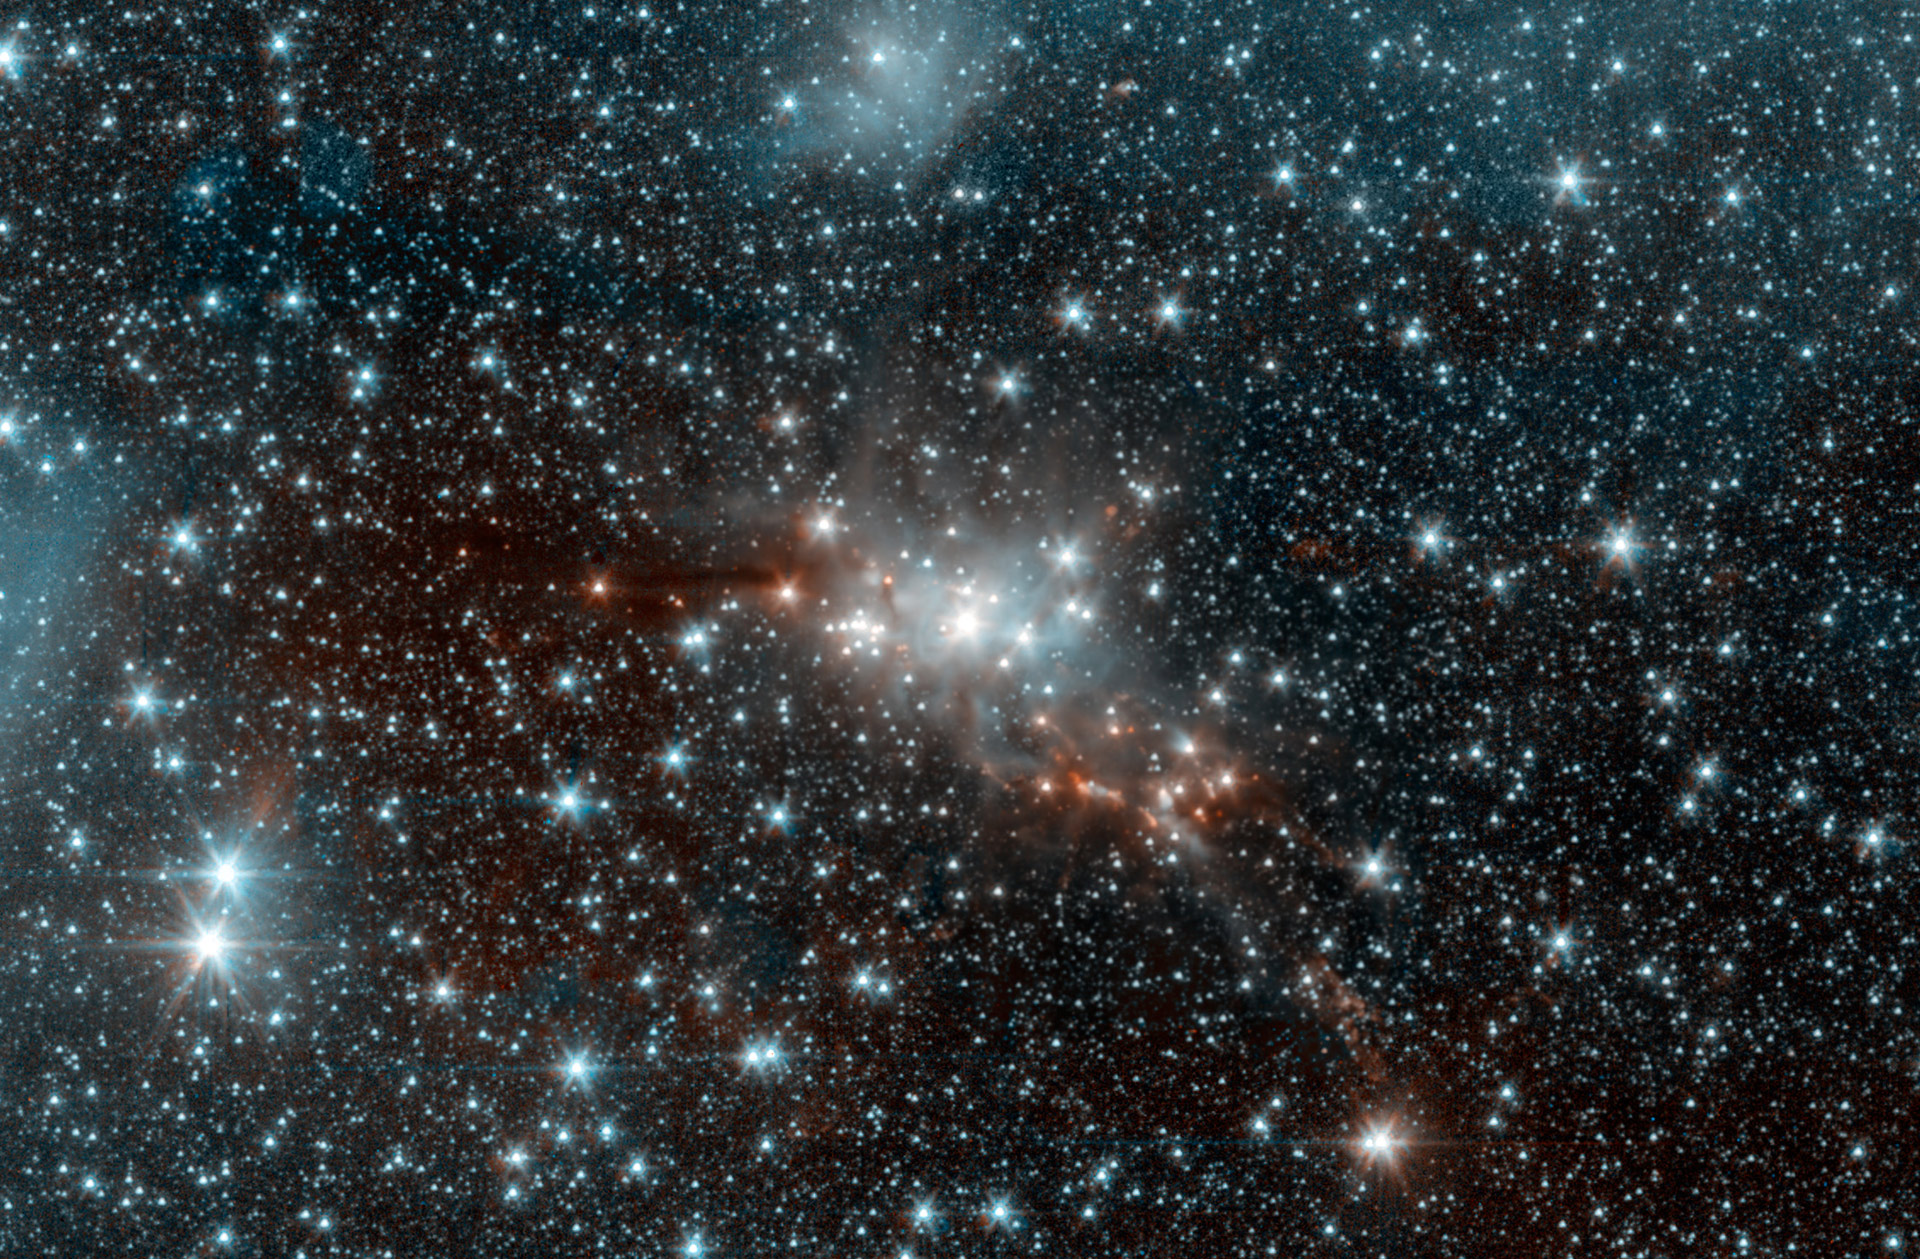 Astronomers study these to learn about stars